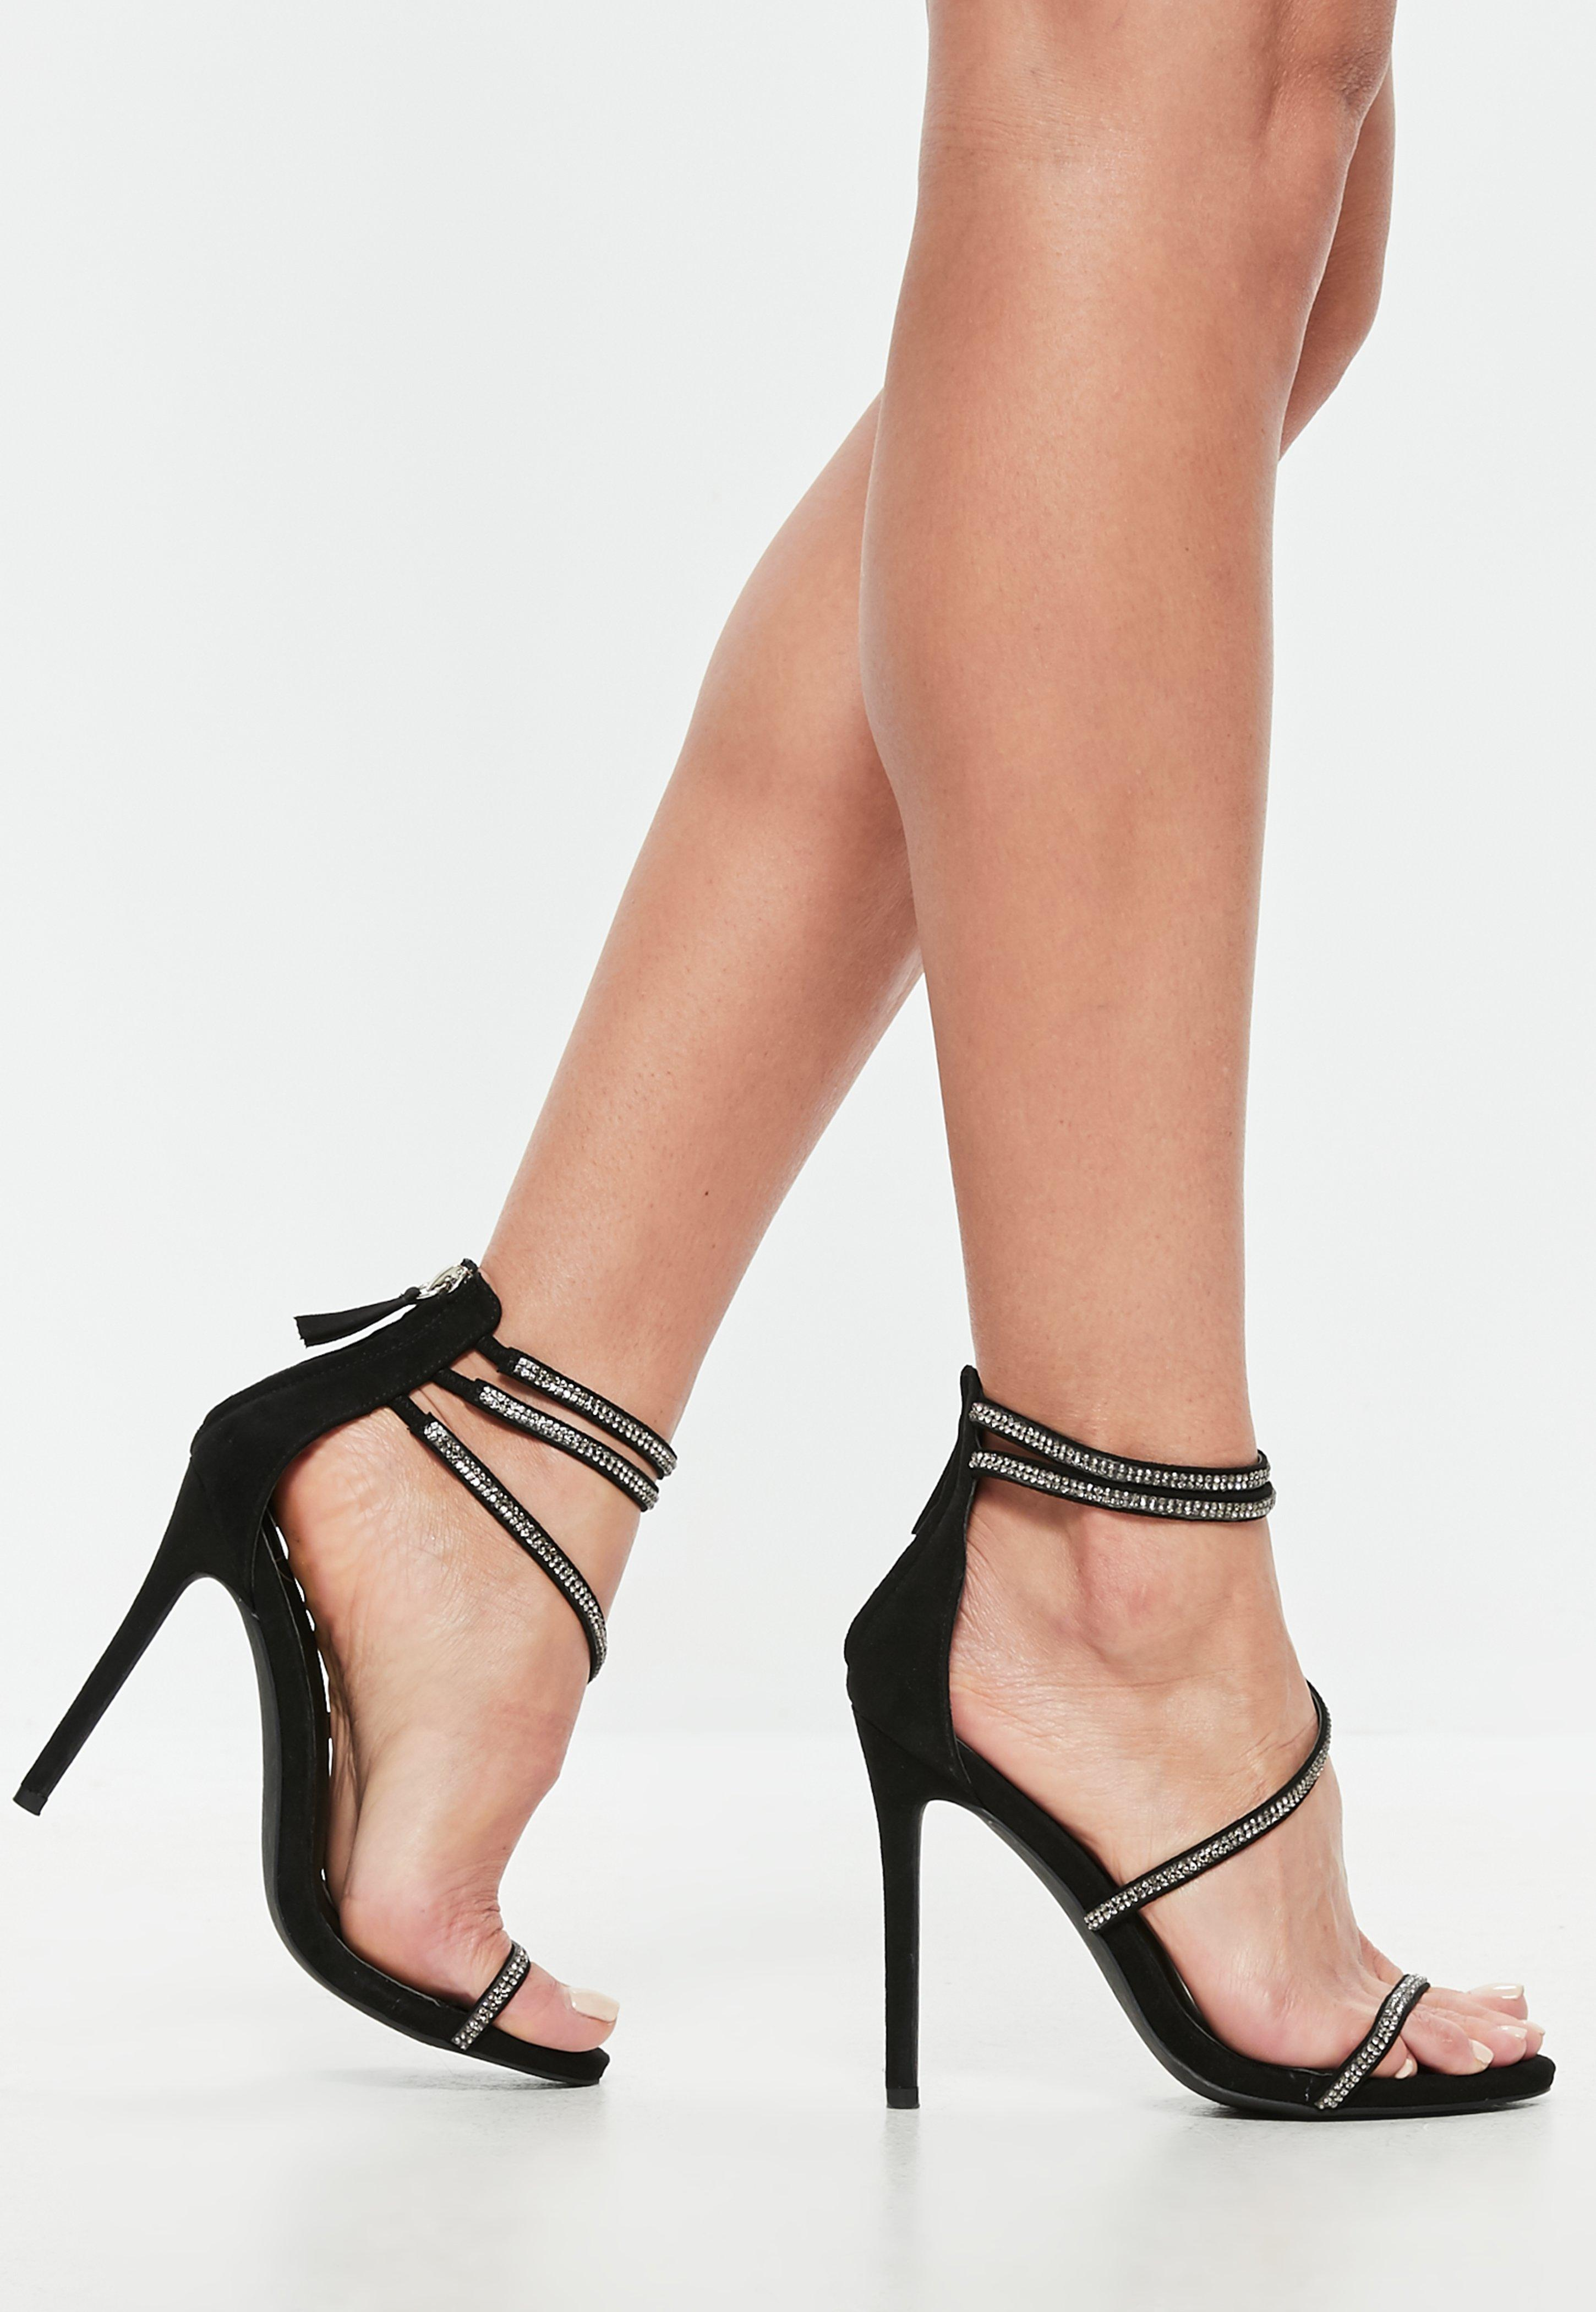 Barely There Heels - High Heels - Shoes